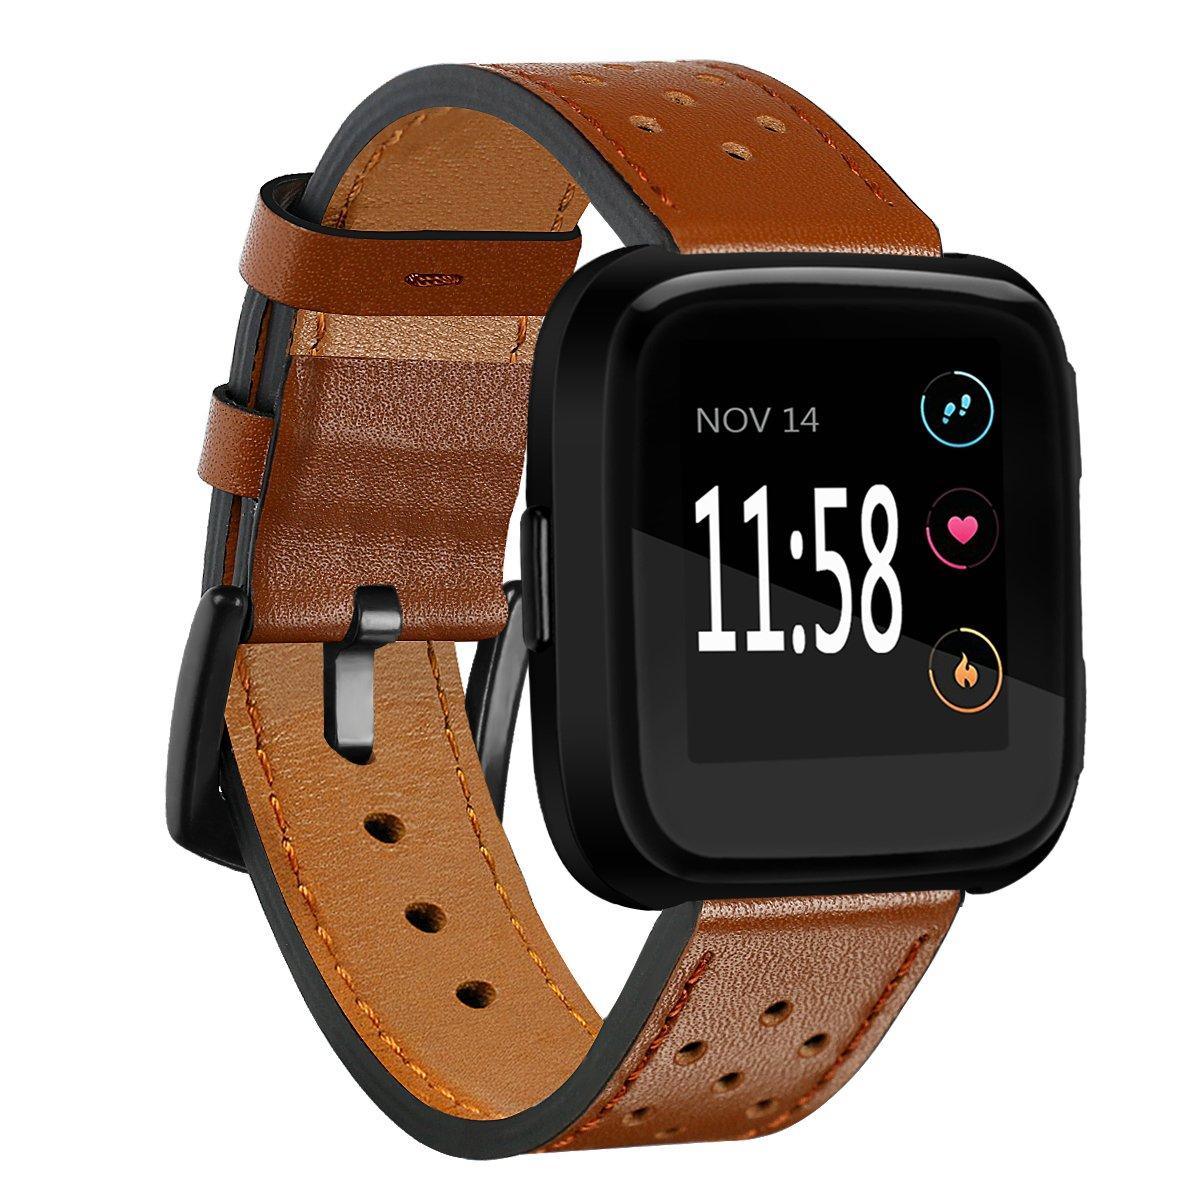 Fitbit Versa Bands Perforated Leather Accessory Band Strap Replacement Wristband for Fitbit Versa Women Men (Brown)